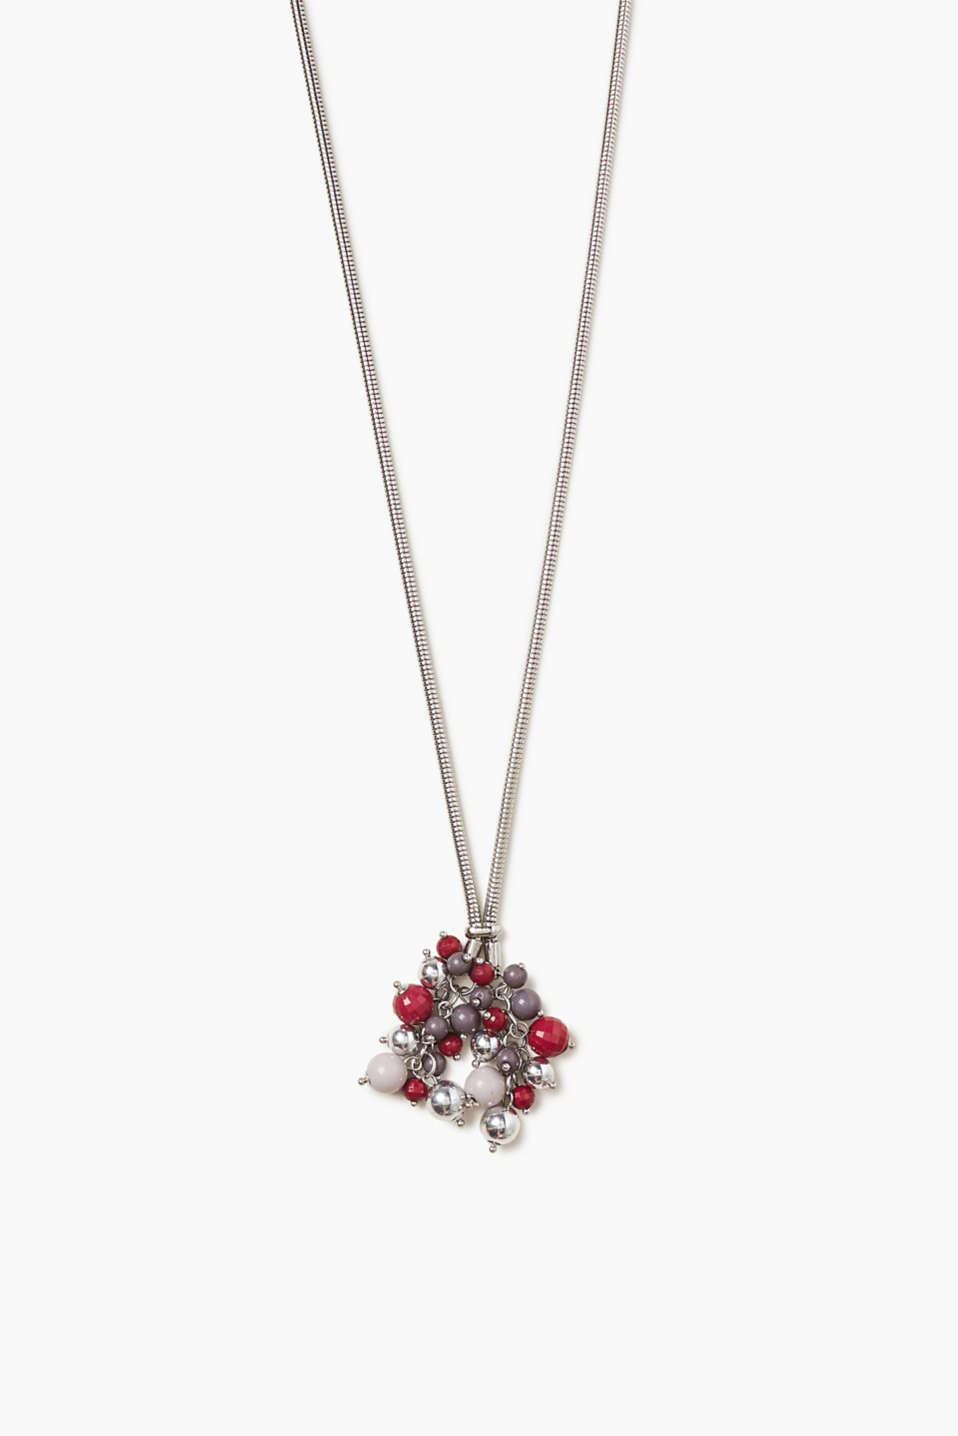 Esprit - Long collier métal, bouquet de perles